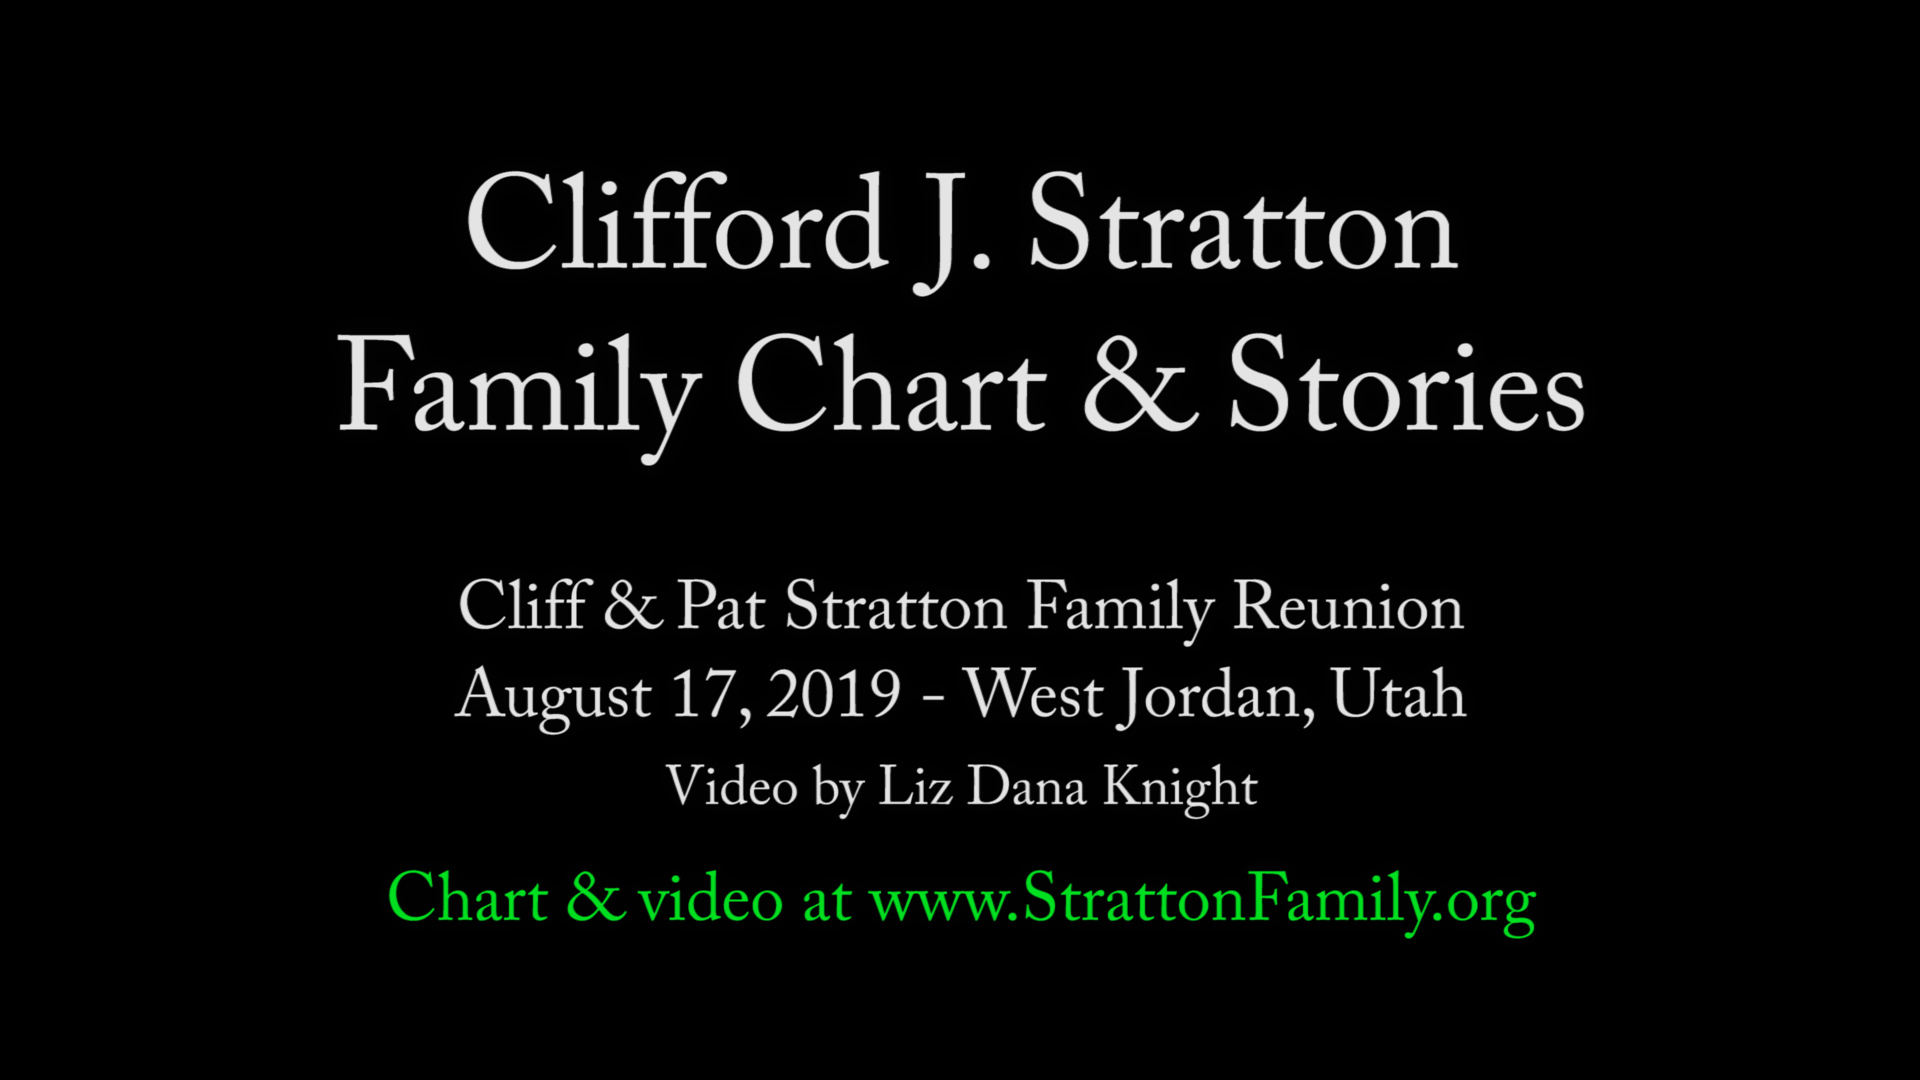 2019 Reunion Cliff Family Chart & Stories